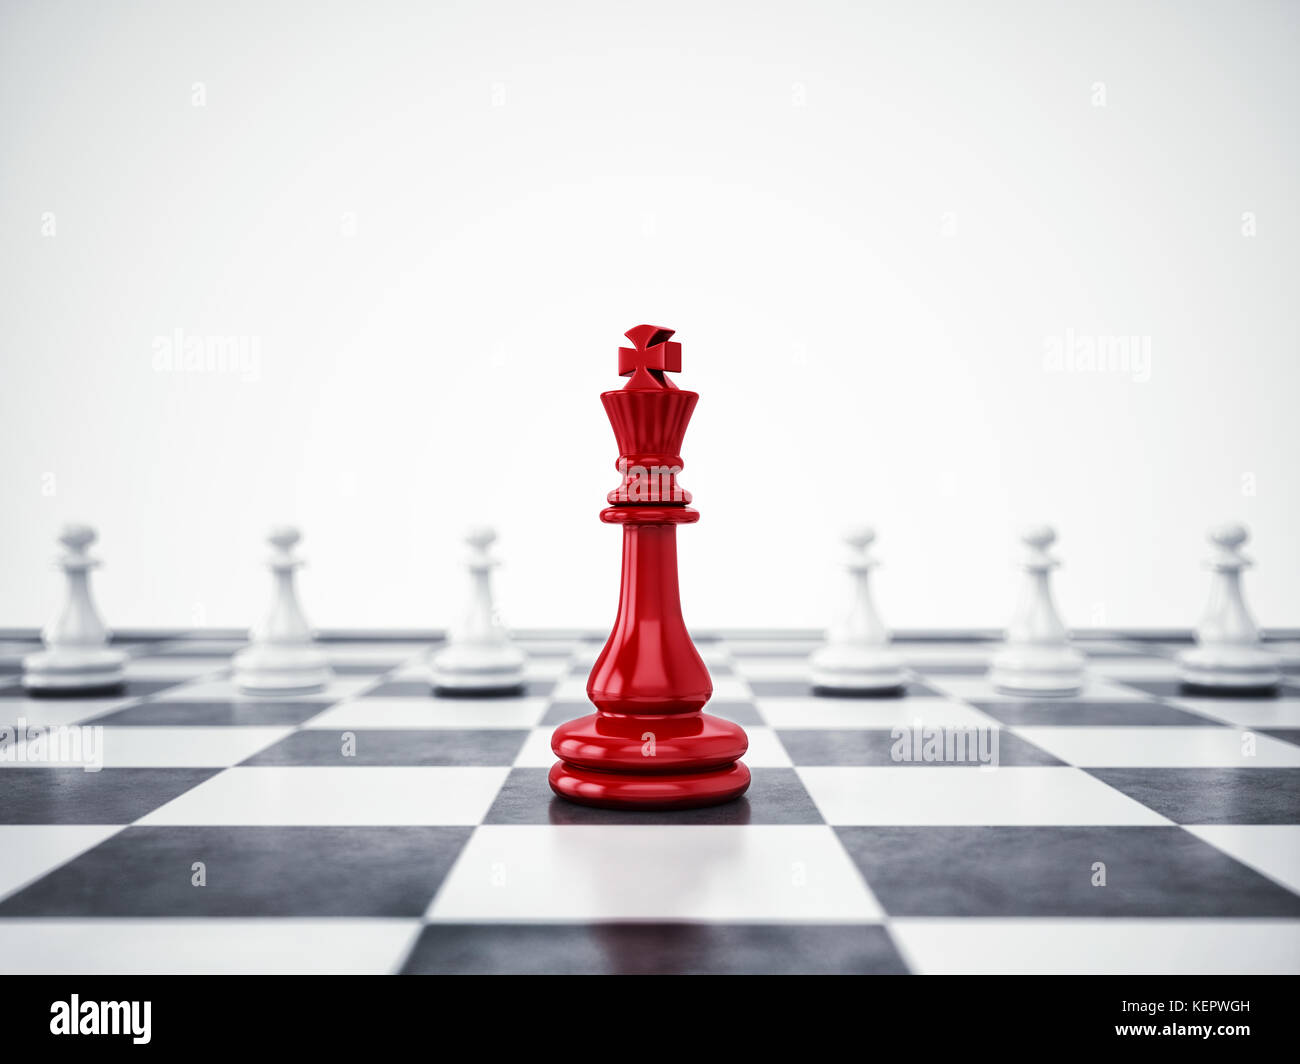 Red pawn ahead of white pawns. 3D Rendering - Stock Image